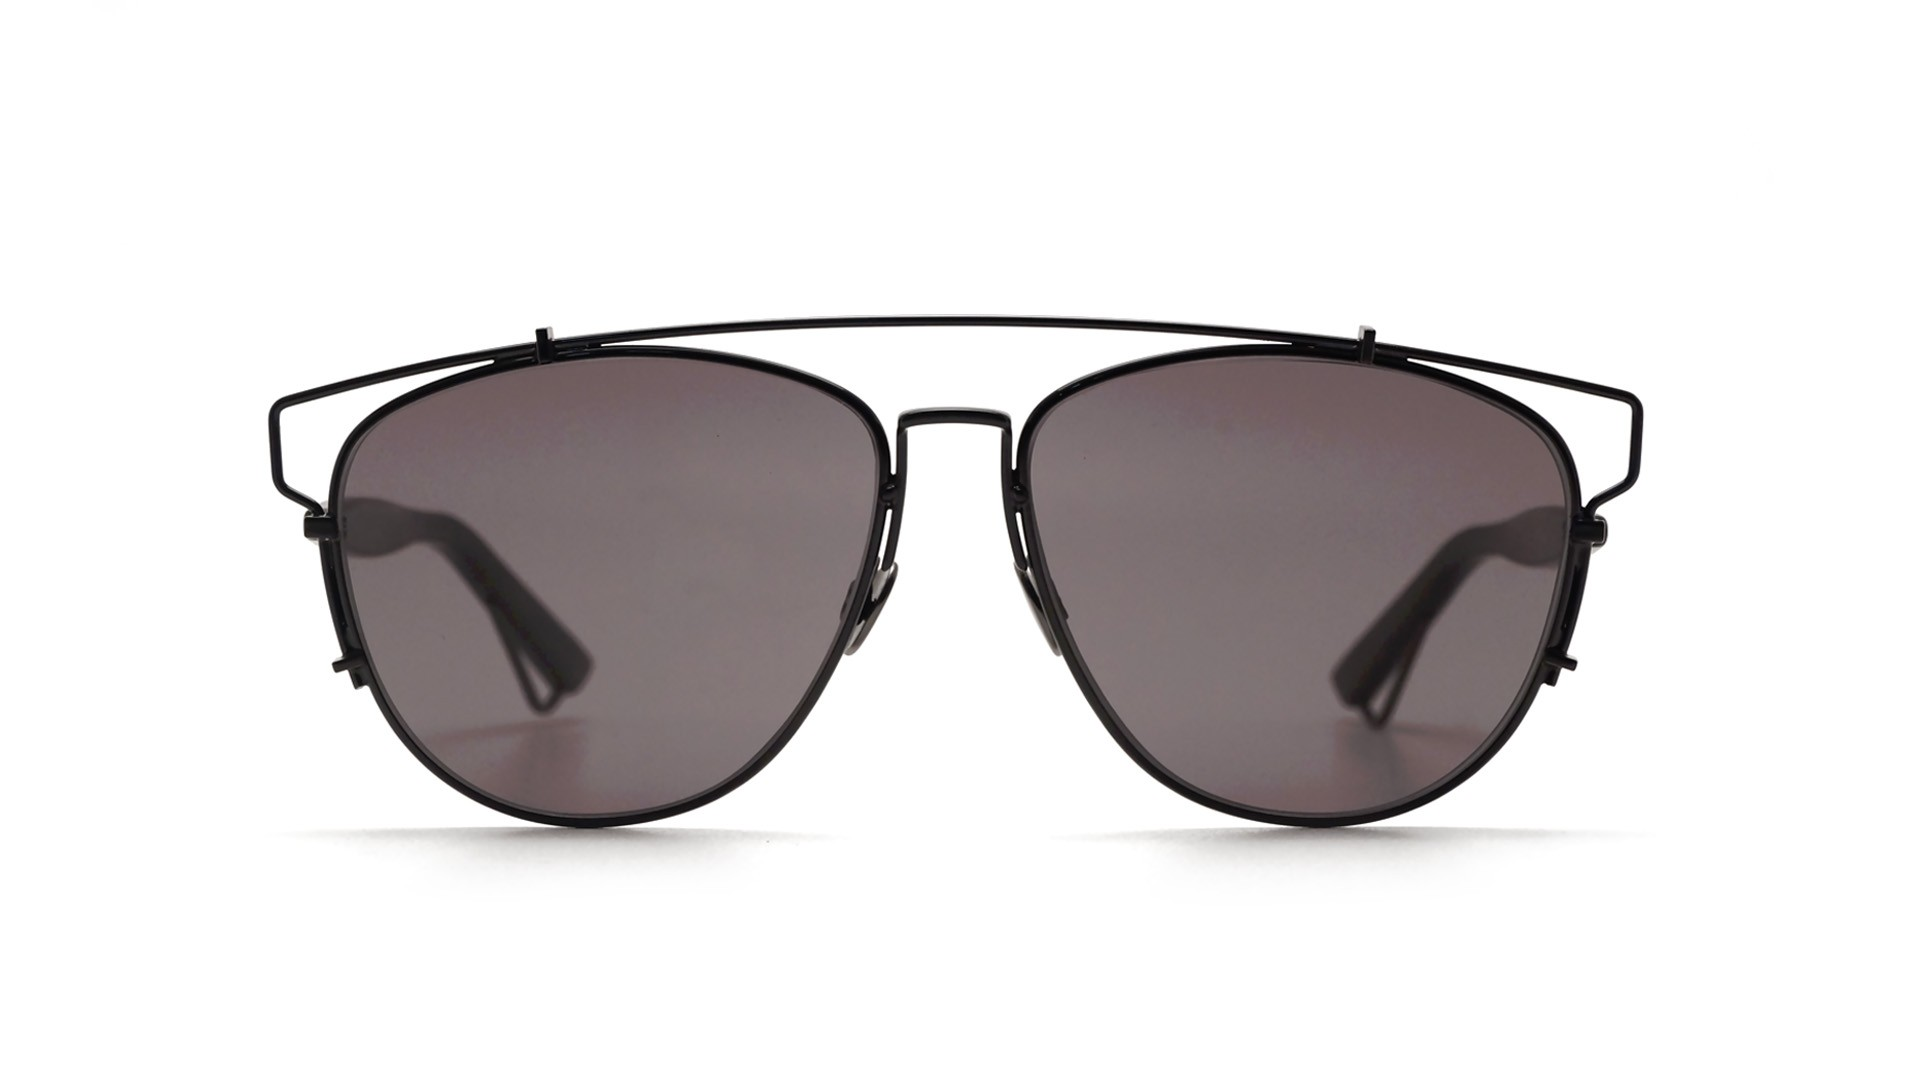 d1e3793501c Sunglasses Dior Technologic Black 65Z2K 57-14 Medium